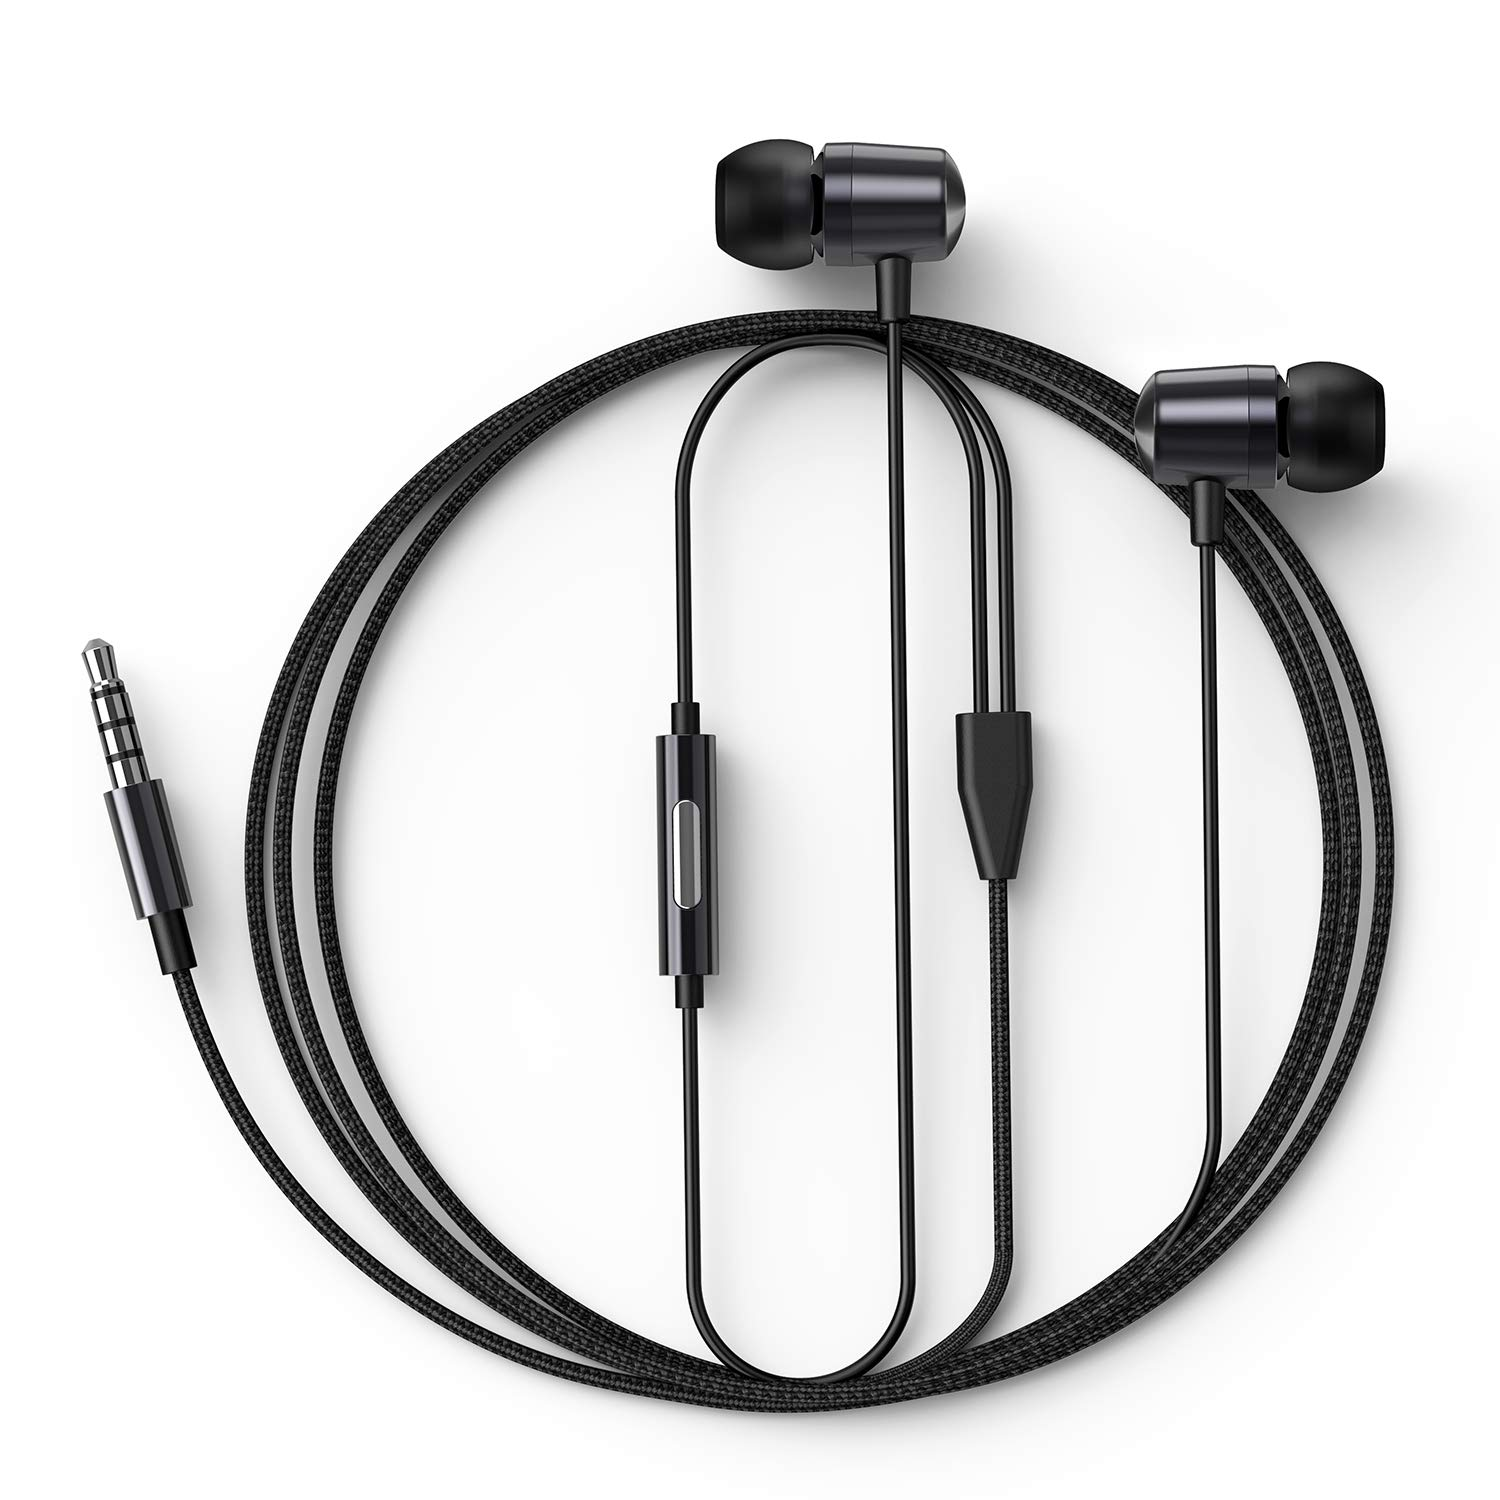 in Ear Headphones Soundtrack Wired Earbuds w/Mic Heavy Deep Bass Earphones with Non Tangle Fabric Braid Cord for Running Gym Work Out Compatible with 3.5MM Audio Jack Device